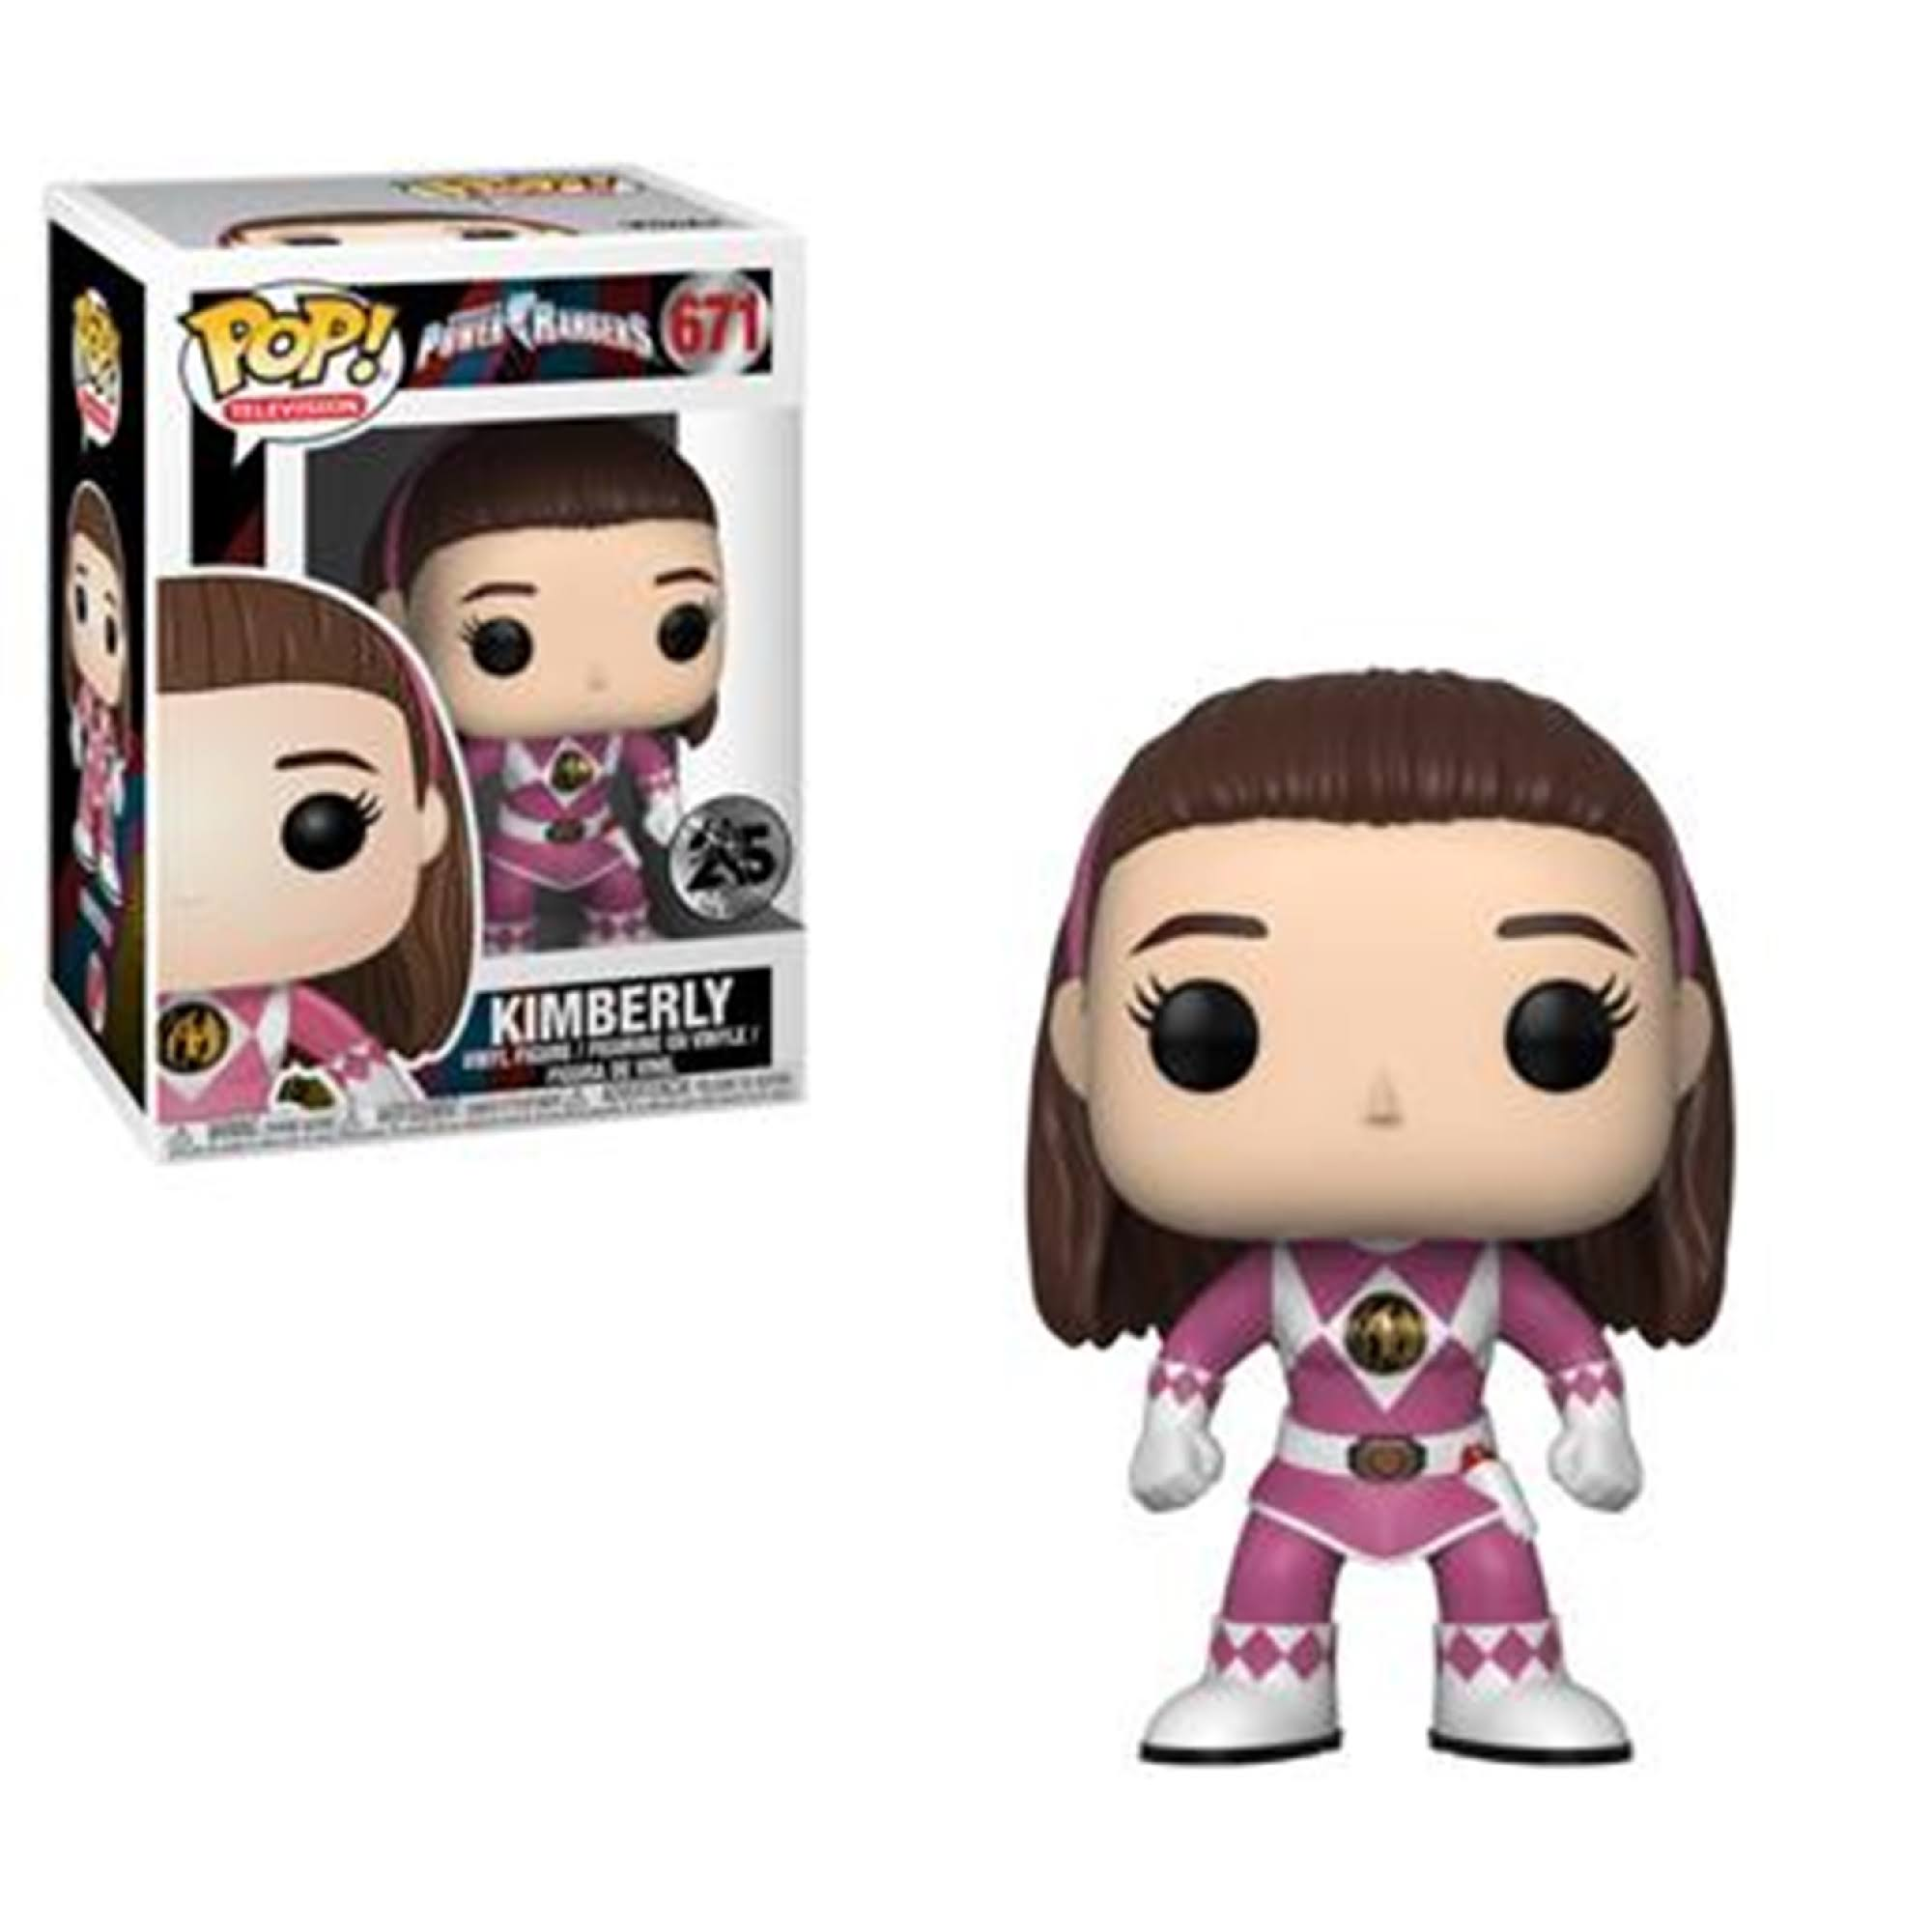 Funko Pop Television 671 Sabans Power Rangers Kimberly Vinyl Figure